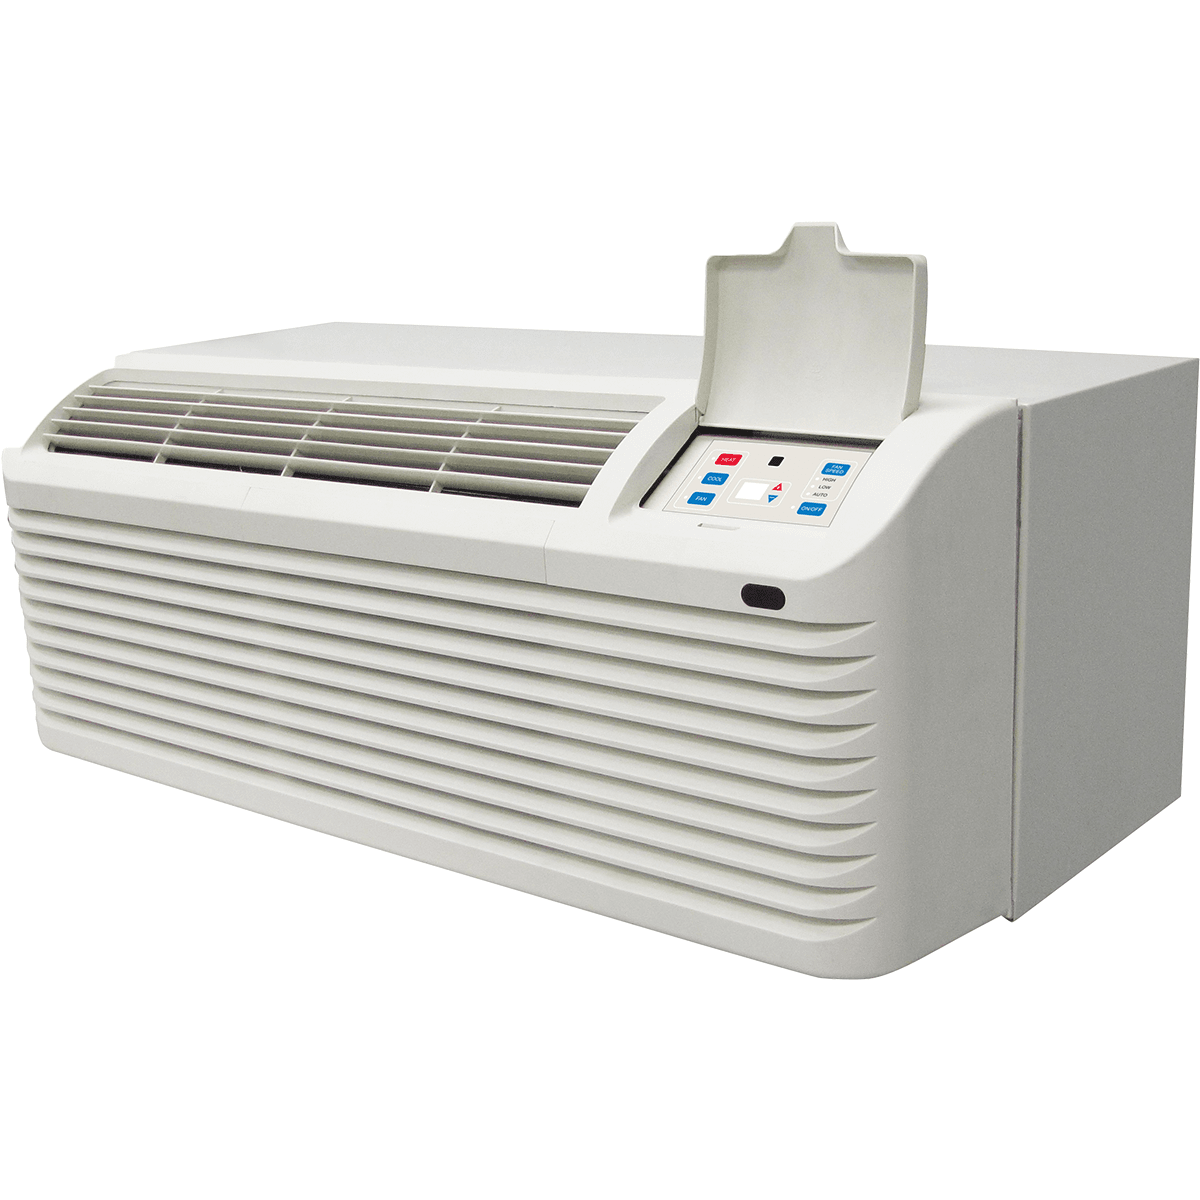 Comfort-aire 7,000 Btu Packaged Terminal Air Conditioner And Heater